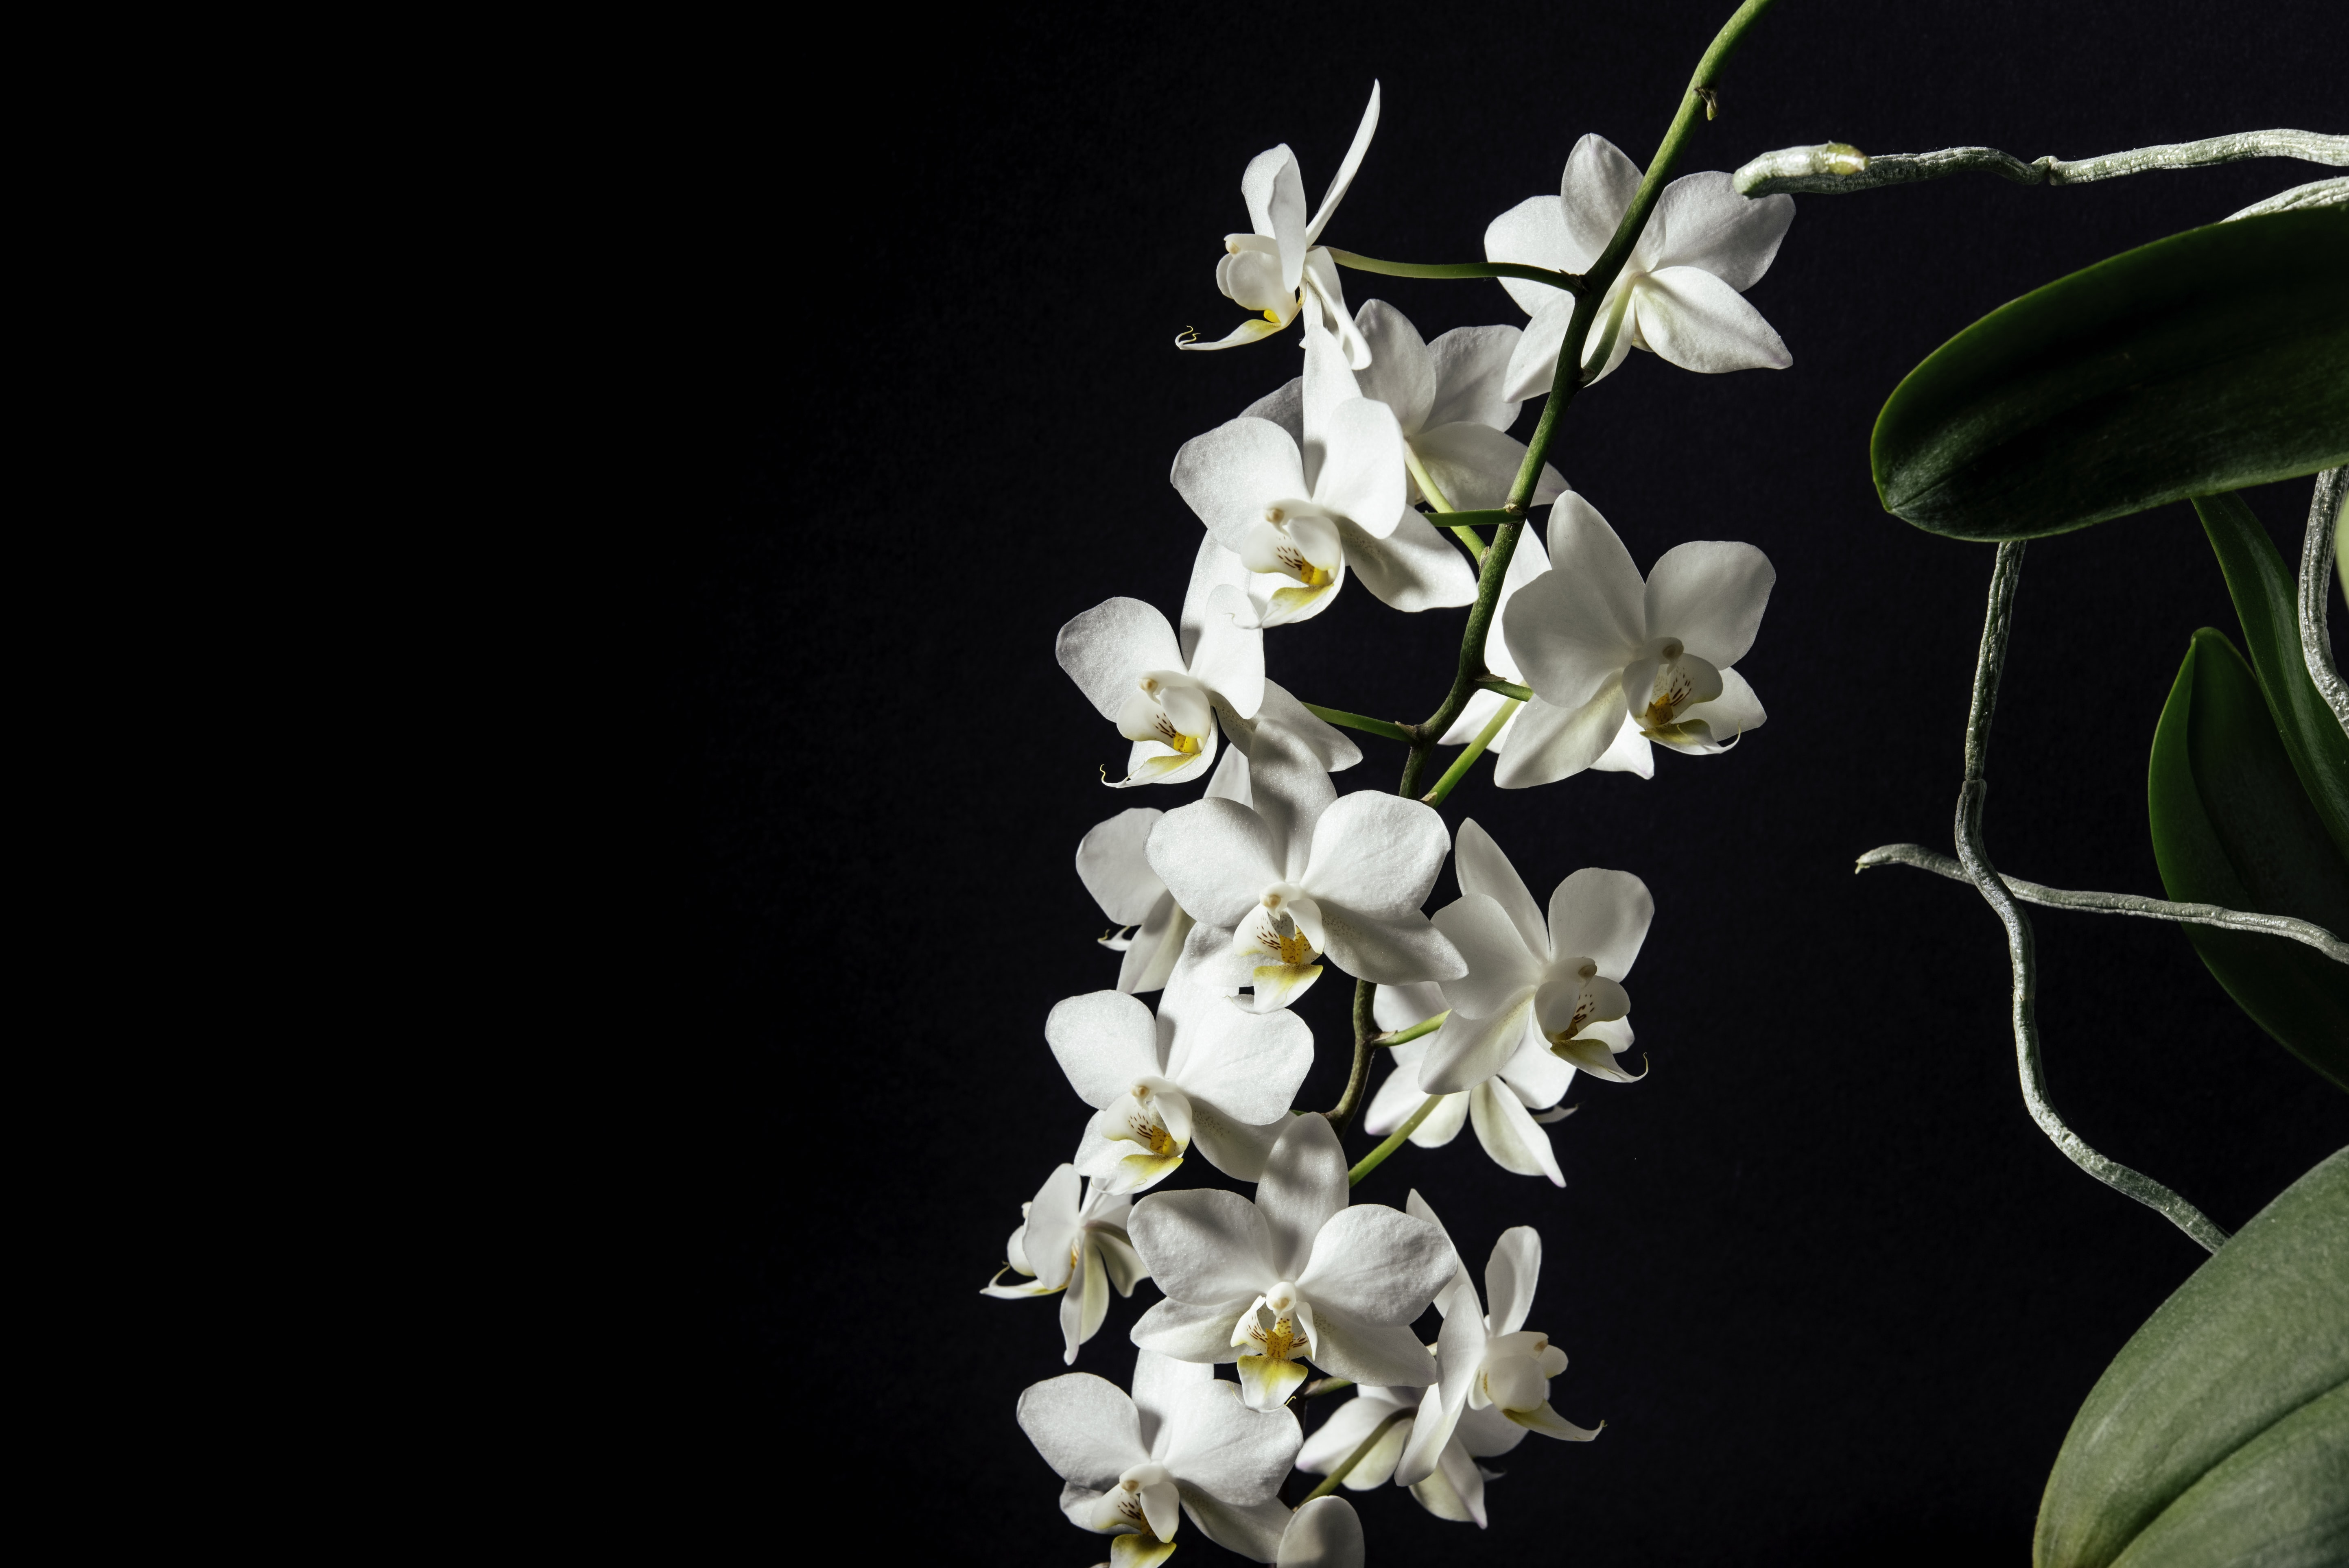 A cluster of white orchids on a long stem against a black background